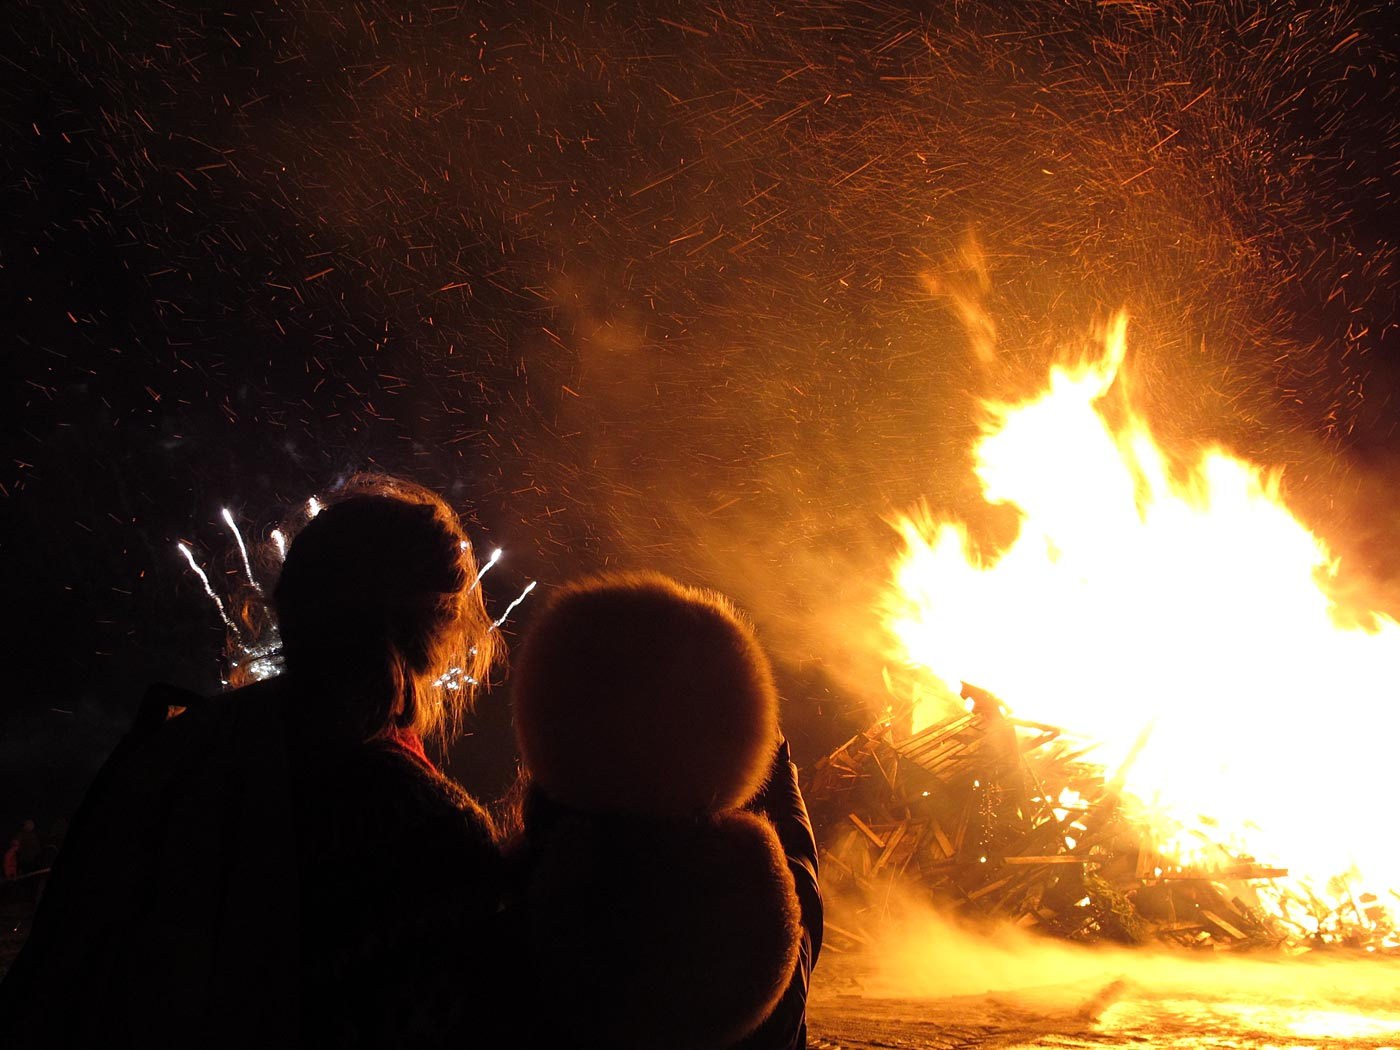 Reykjavík. Bless bless Christmas ... - ... also a lot of fireworks was set off. (6 January 2013)